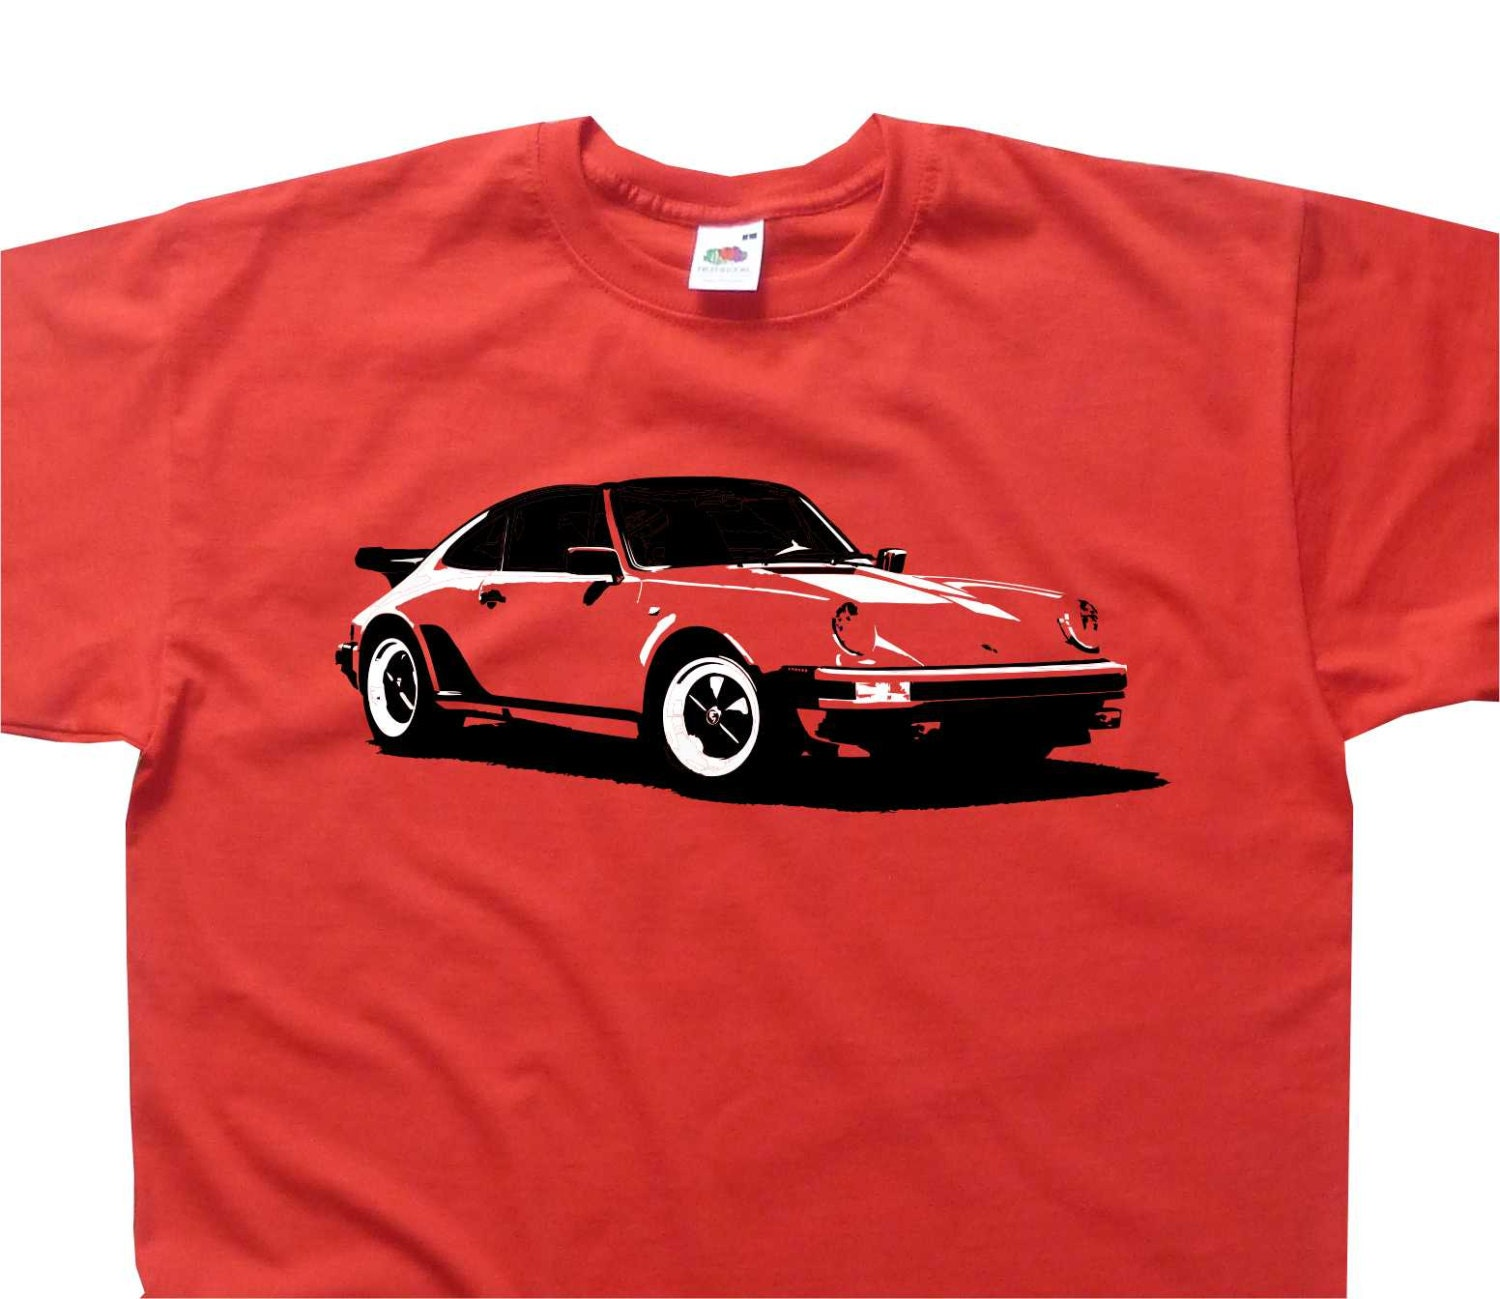 classic 911 turbo t shirt porsche inspired bc120 various. Black Bedroom Furniture Sets. Home Design Ideas